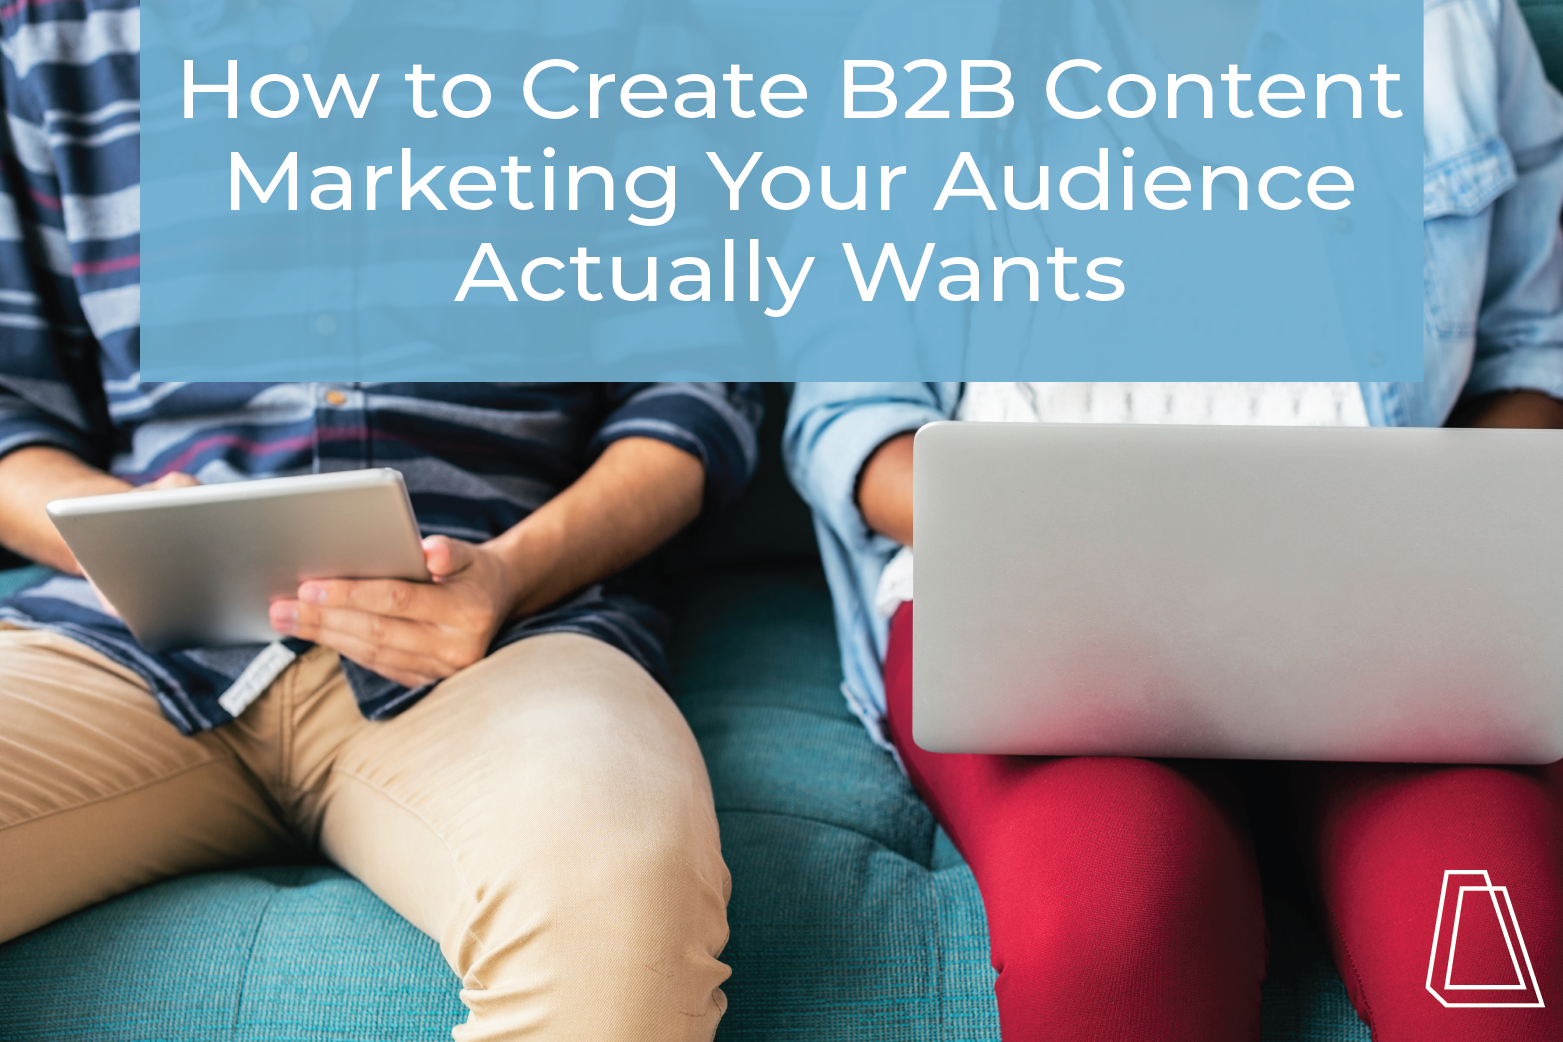 how to create b2b content marketing your audience actually wants